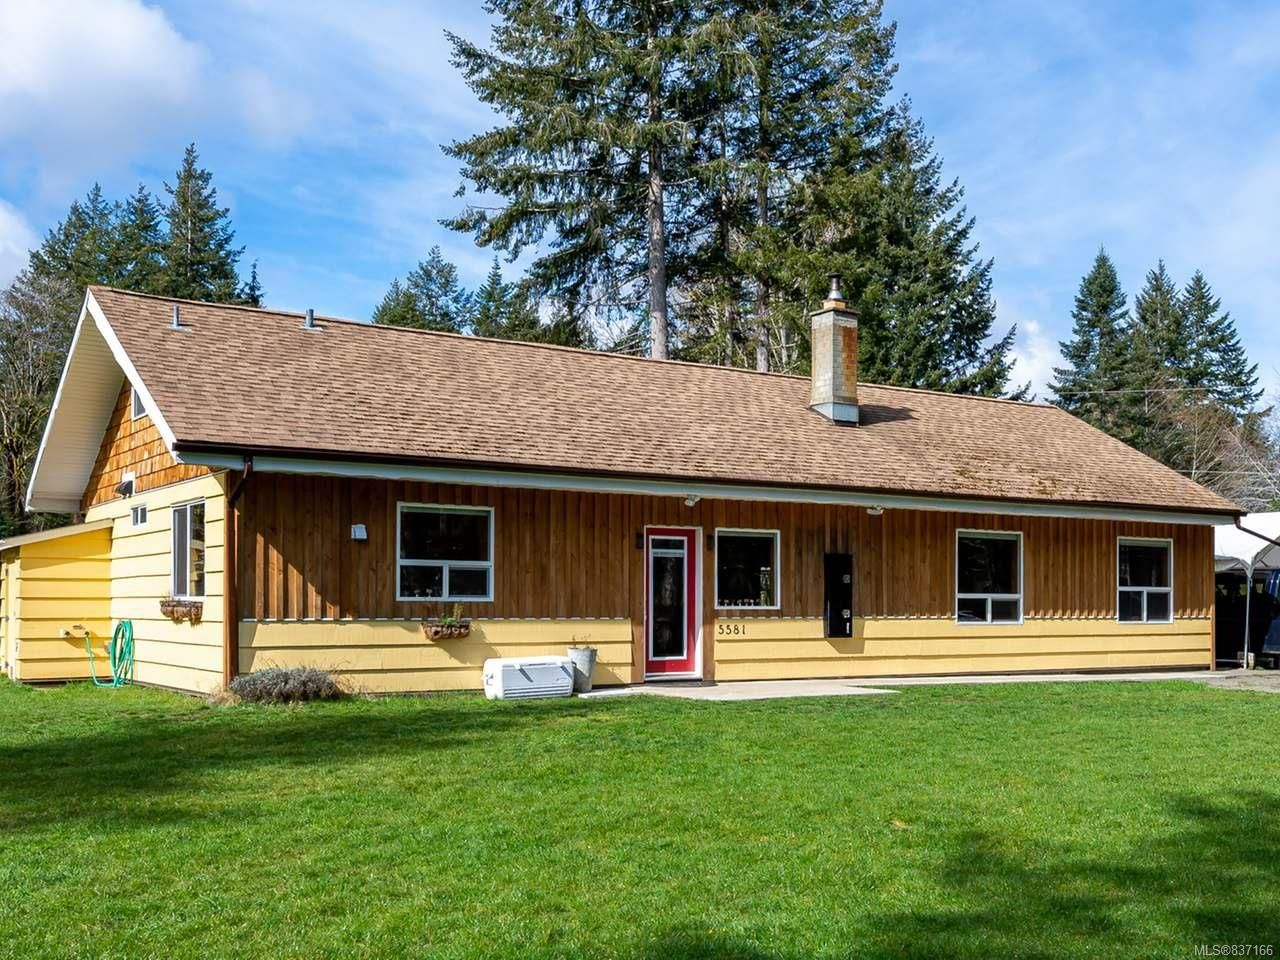 Main Photo: 5581 Seacliff Rd in COURTENAY: CV Courtenay North House for sale (Comox Valley)  : MLS®# 837166